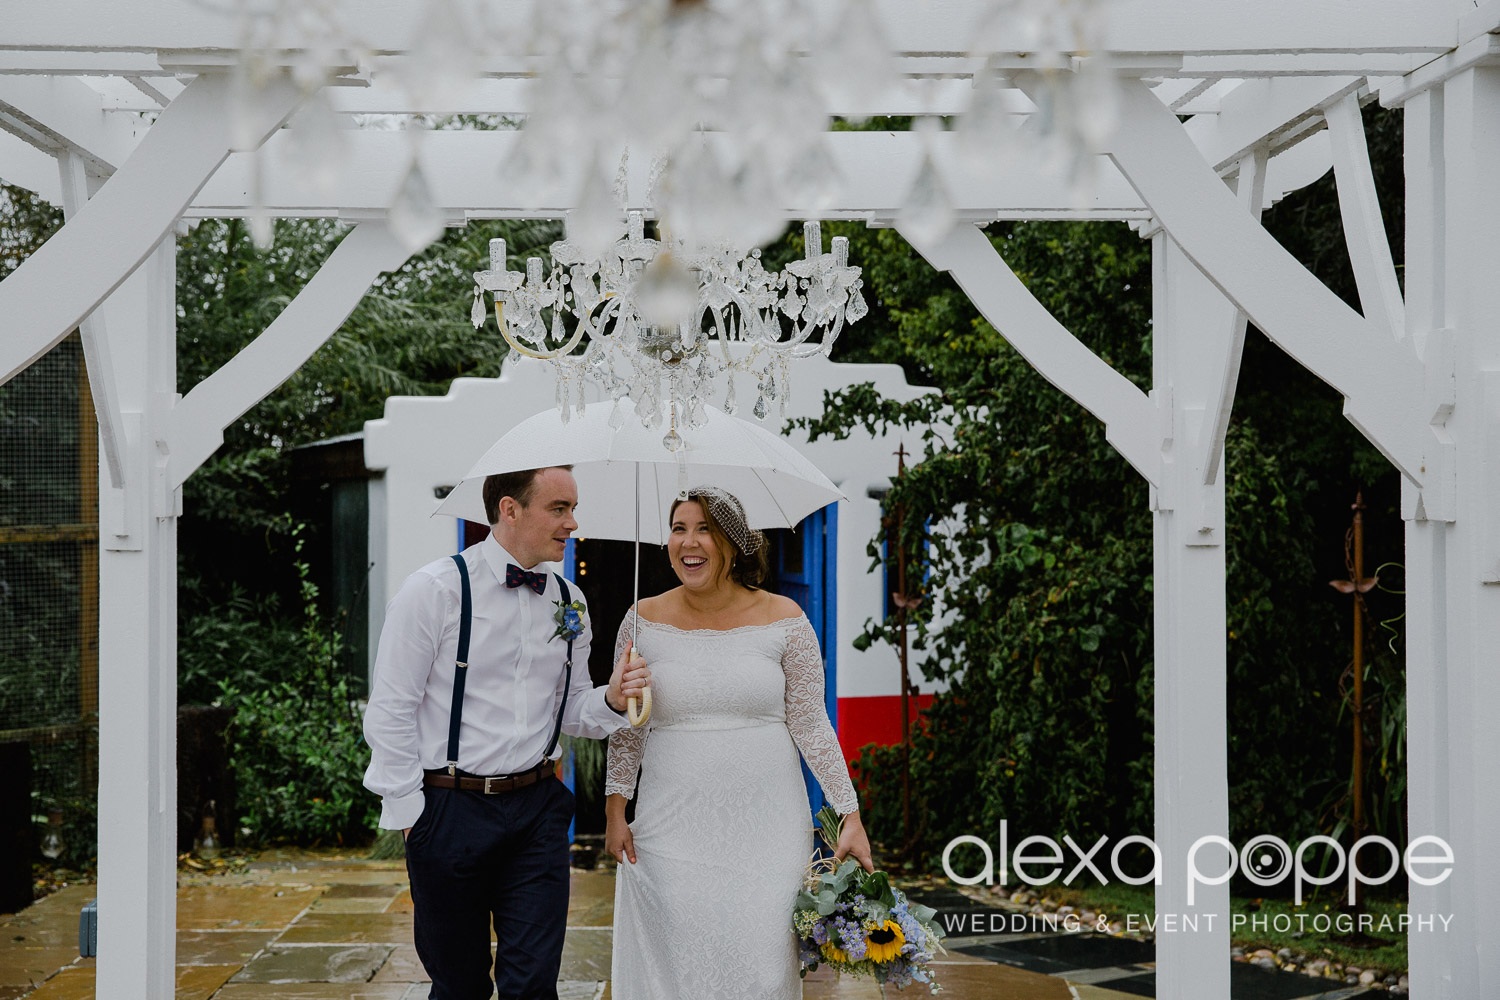 KM_elopement_lowerbarns_27.jpg